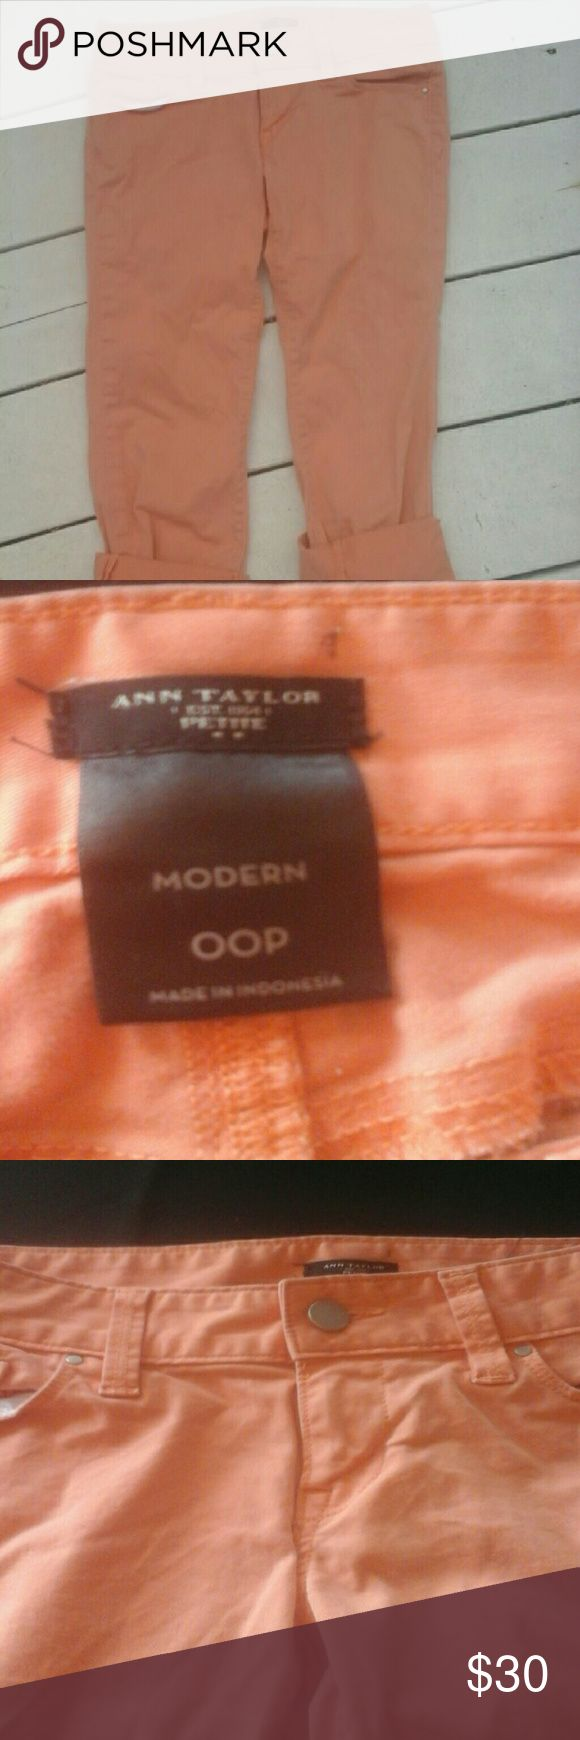 Ann Taylor Petite Cropped Coral Capris Ann Taylor petite 00P coral capris. Super cute for a casual outfit or pair it with a dressy top and you have the perfect outfit! The condition is barely used, worn 2-3 times, great condition, super comfortable! Ann Taylor Pants Capris